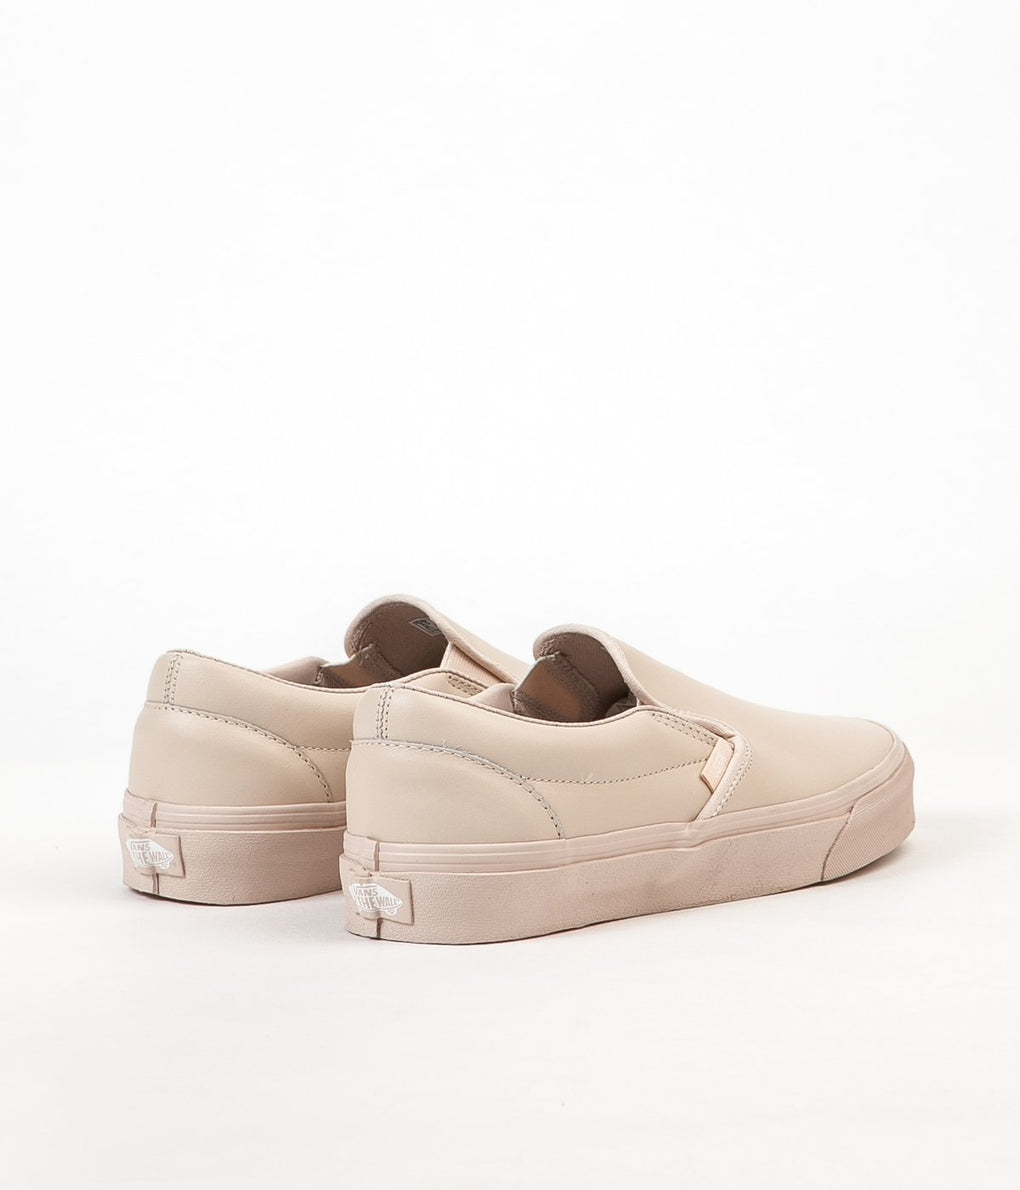 Vans Classic Slip On Leather Shoes - Whisper Pink / Mono